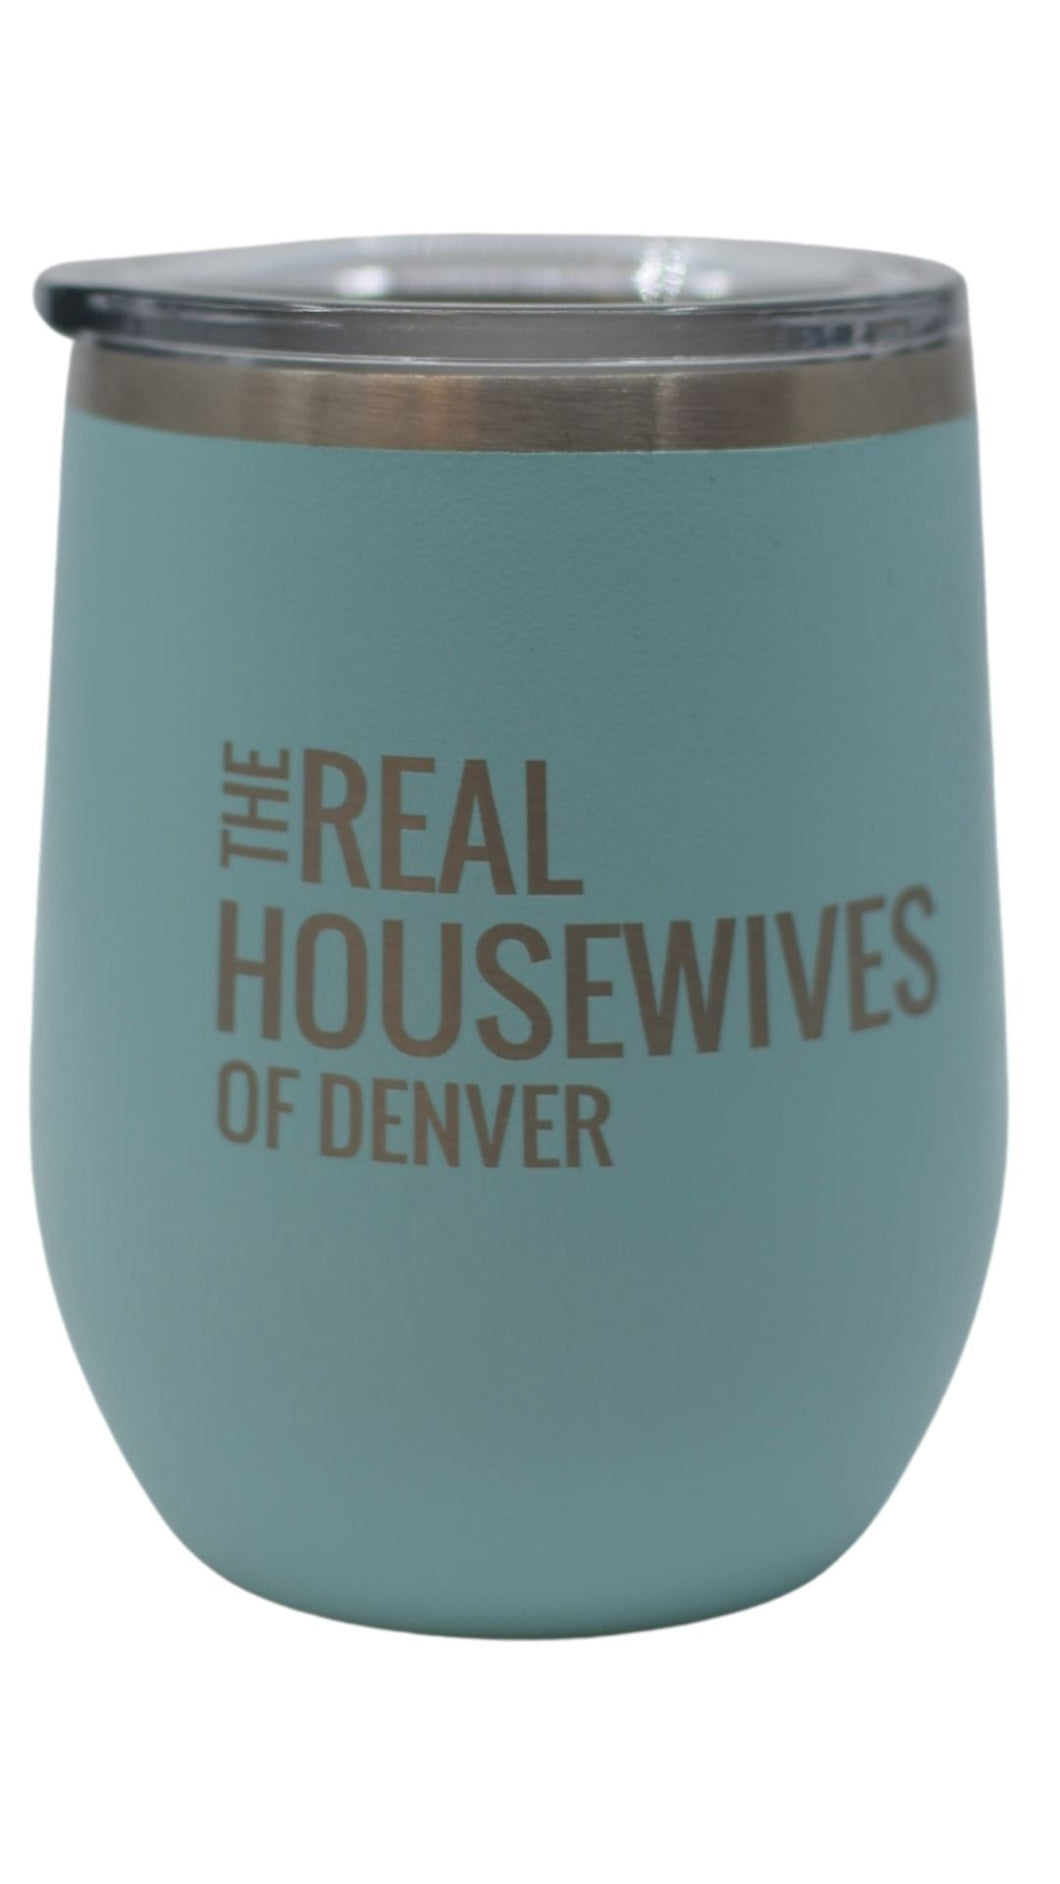 The Real Housewives of Denver